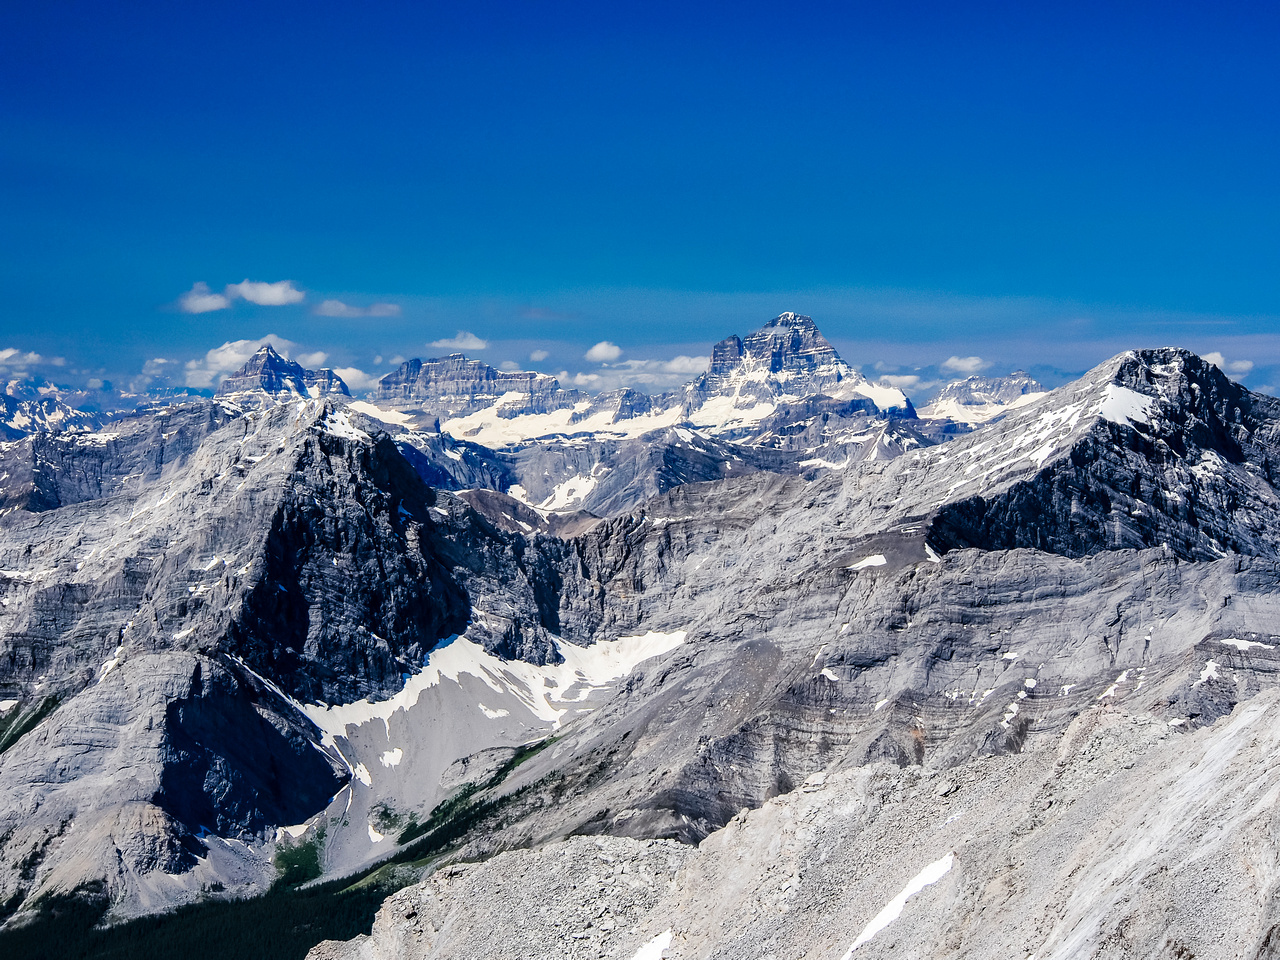 Summit views over Nestor (L) and Old Goat (R) to Assiniboine, Eon and Aye.